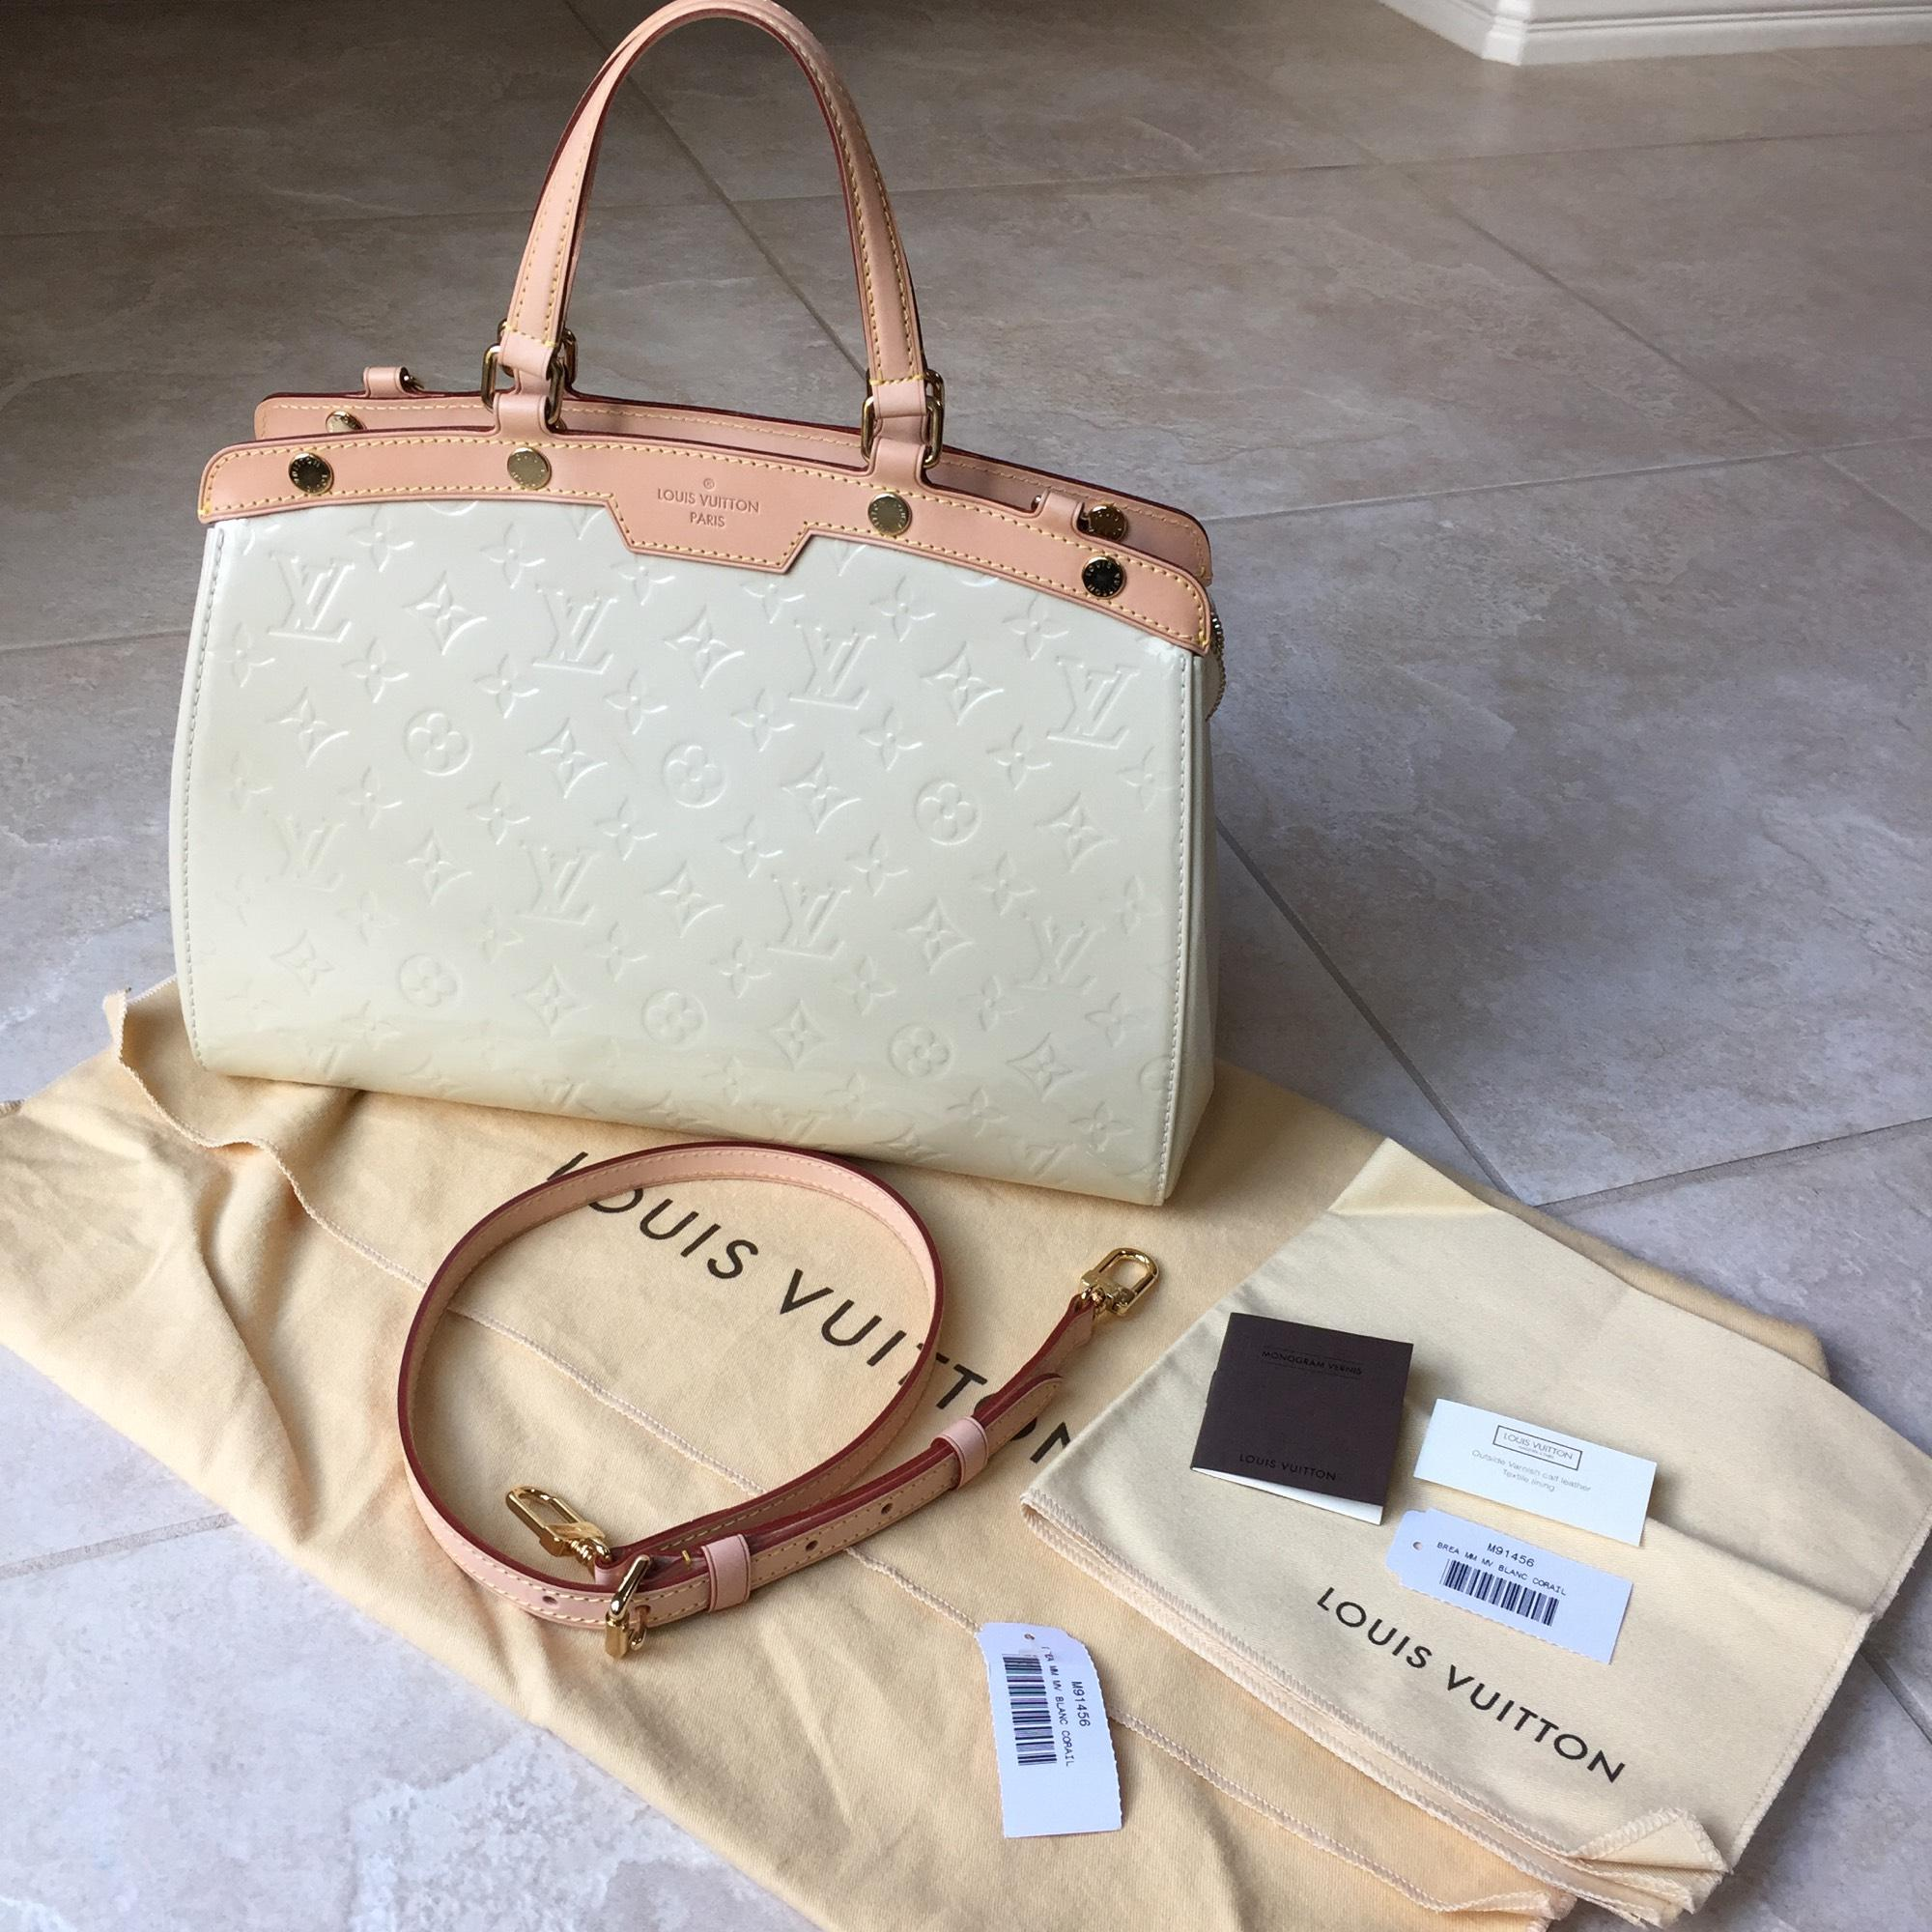 Louis Vuitton Brea Mm Monogram Vernis Lv Vernis Satchel in Blanc Corail.  123456789101112